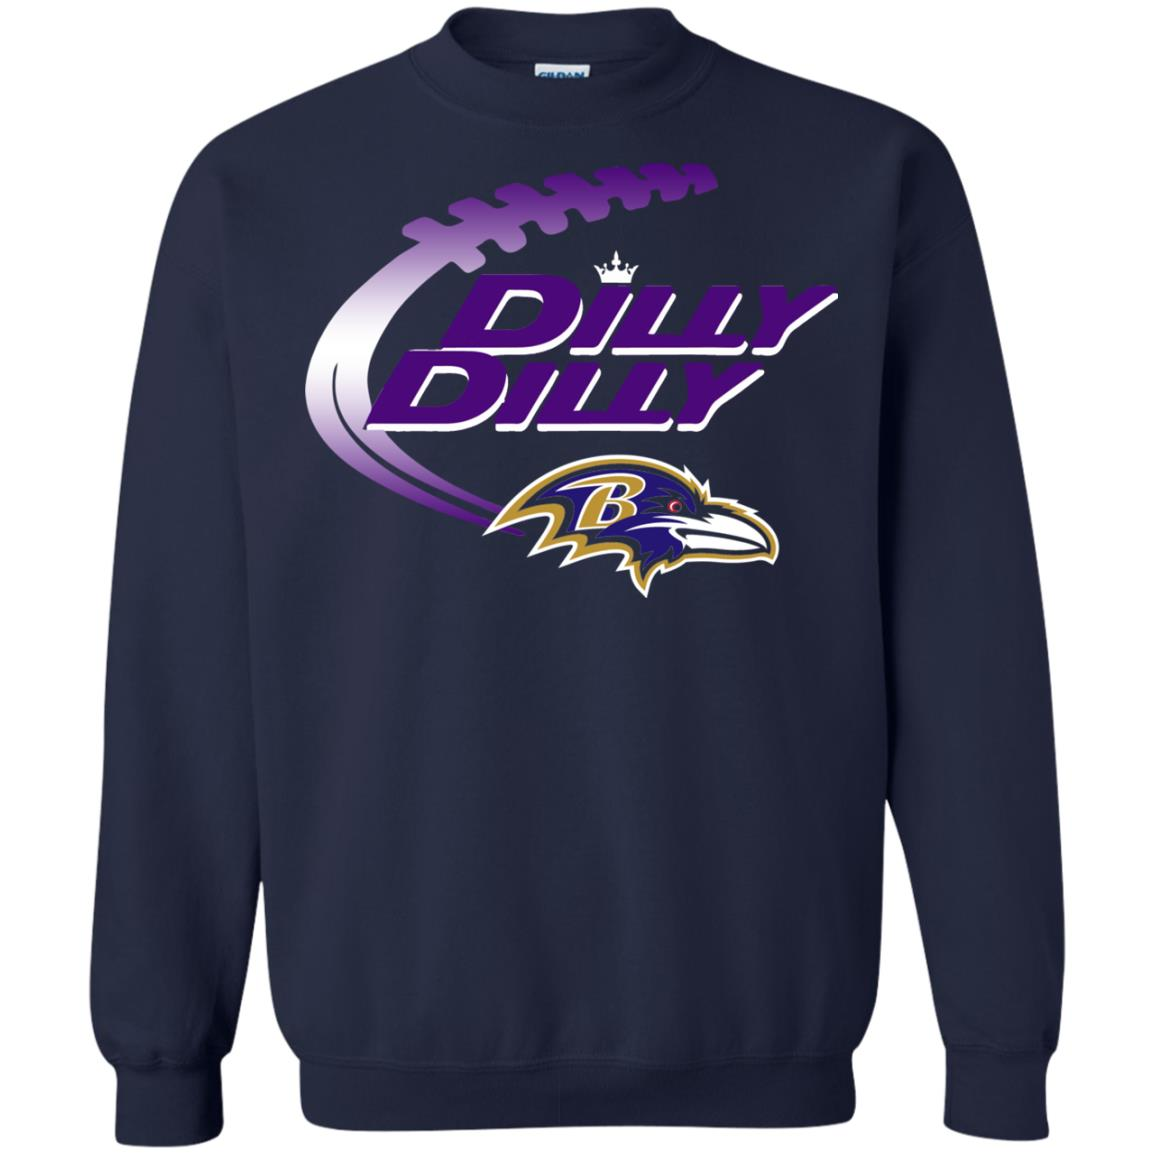 image 1879 - Dilly Dilly Baltimore Ravens Shirt, Hoodie, Long Sleeve